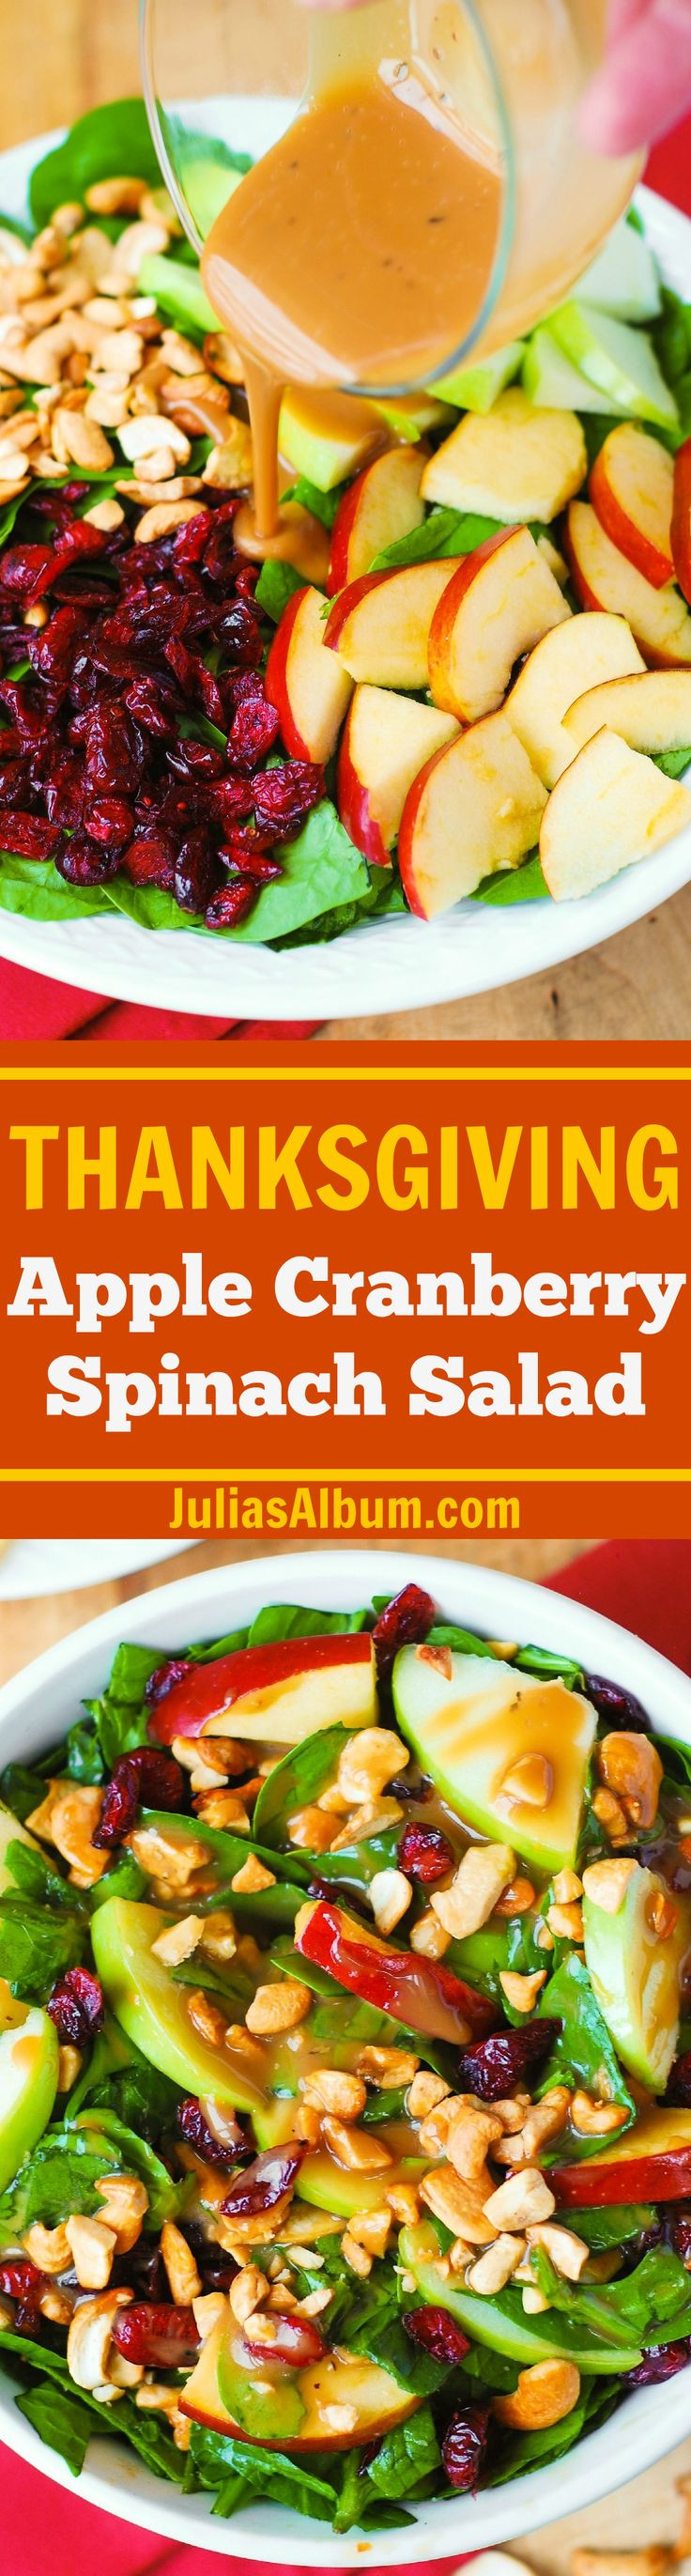 Thanksgiving Side Salads  17 Best ideas about Thanksgiving Salad on Pinterest